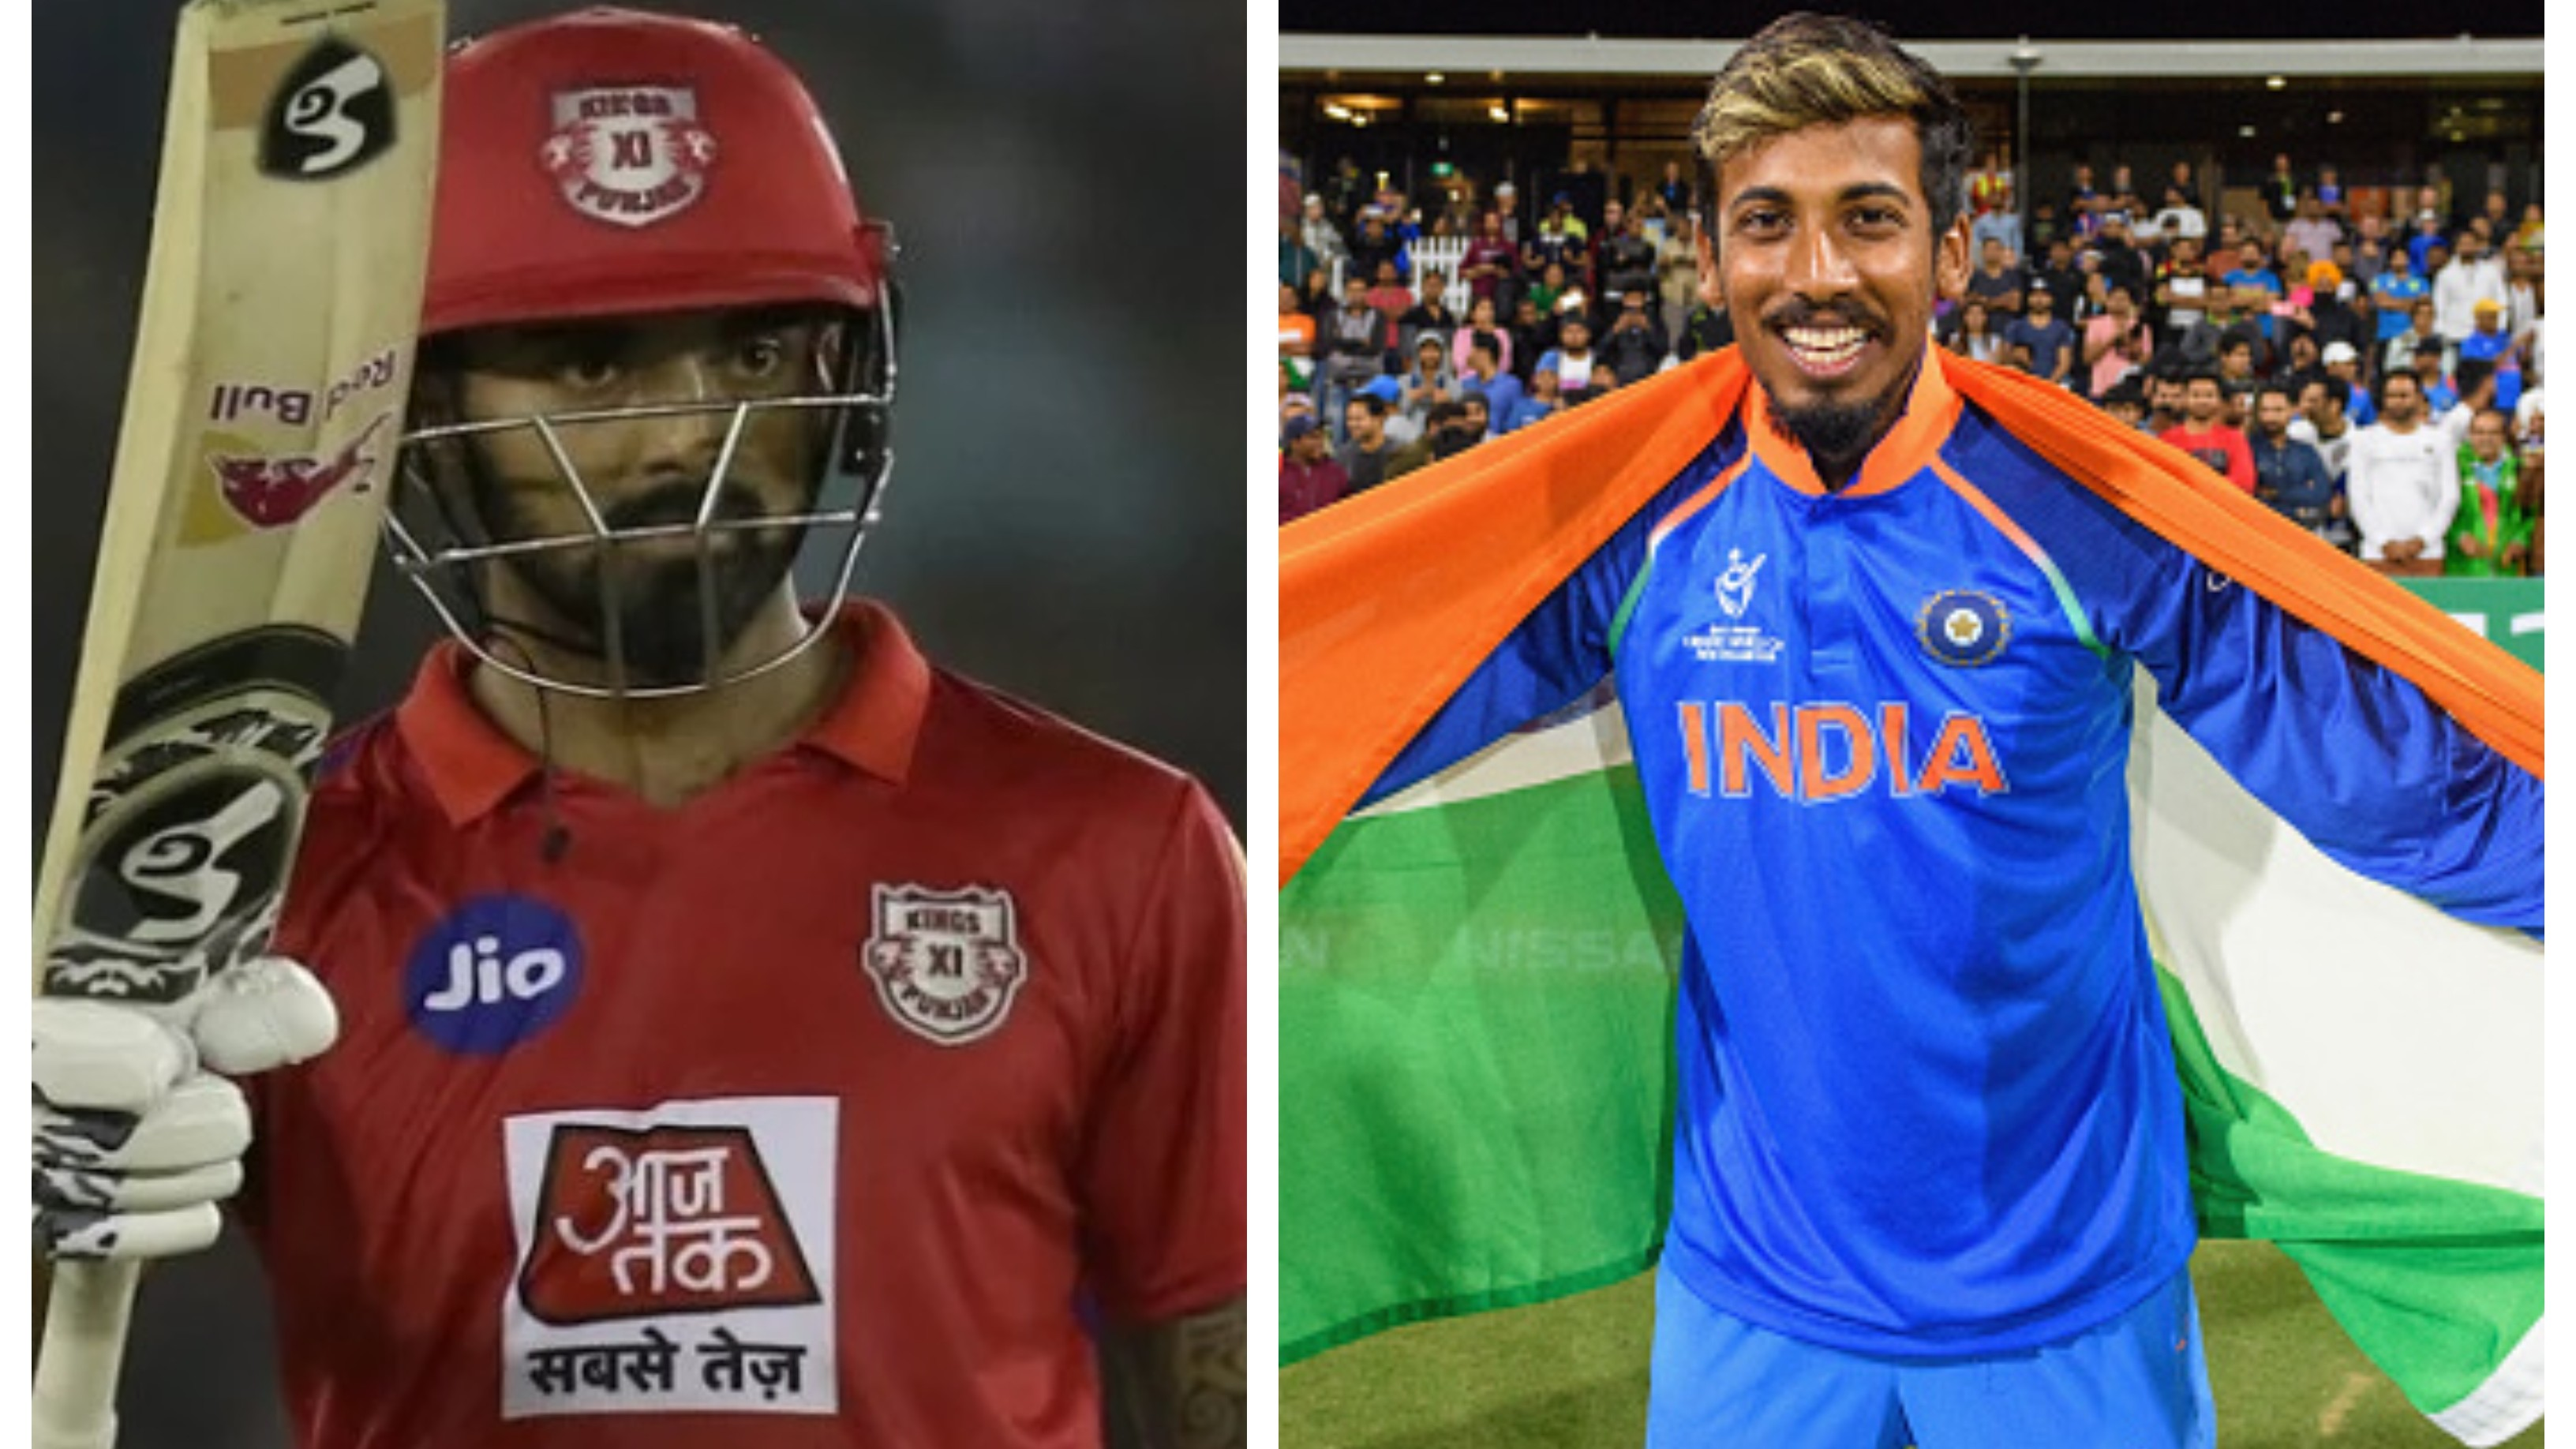 IPL 2020: Ishan Porel excited to play under KL Rahul's captaincy in upcoming IPL